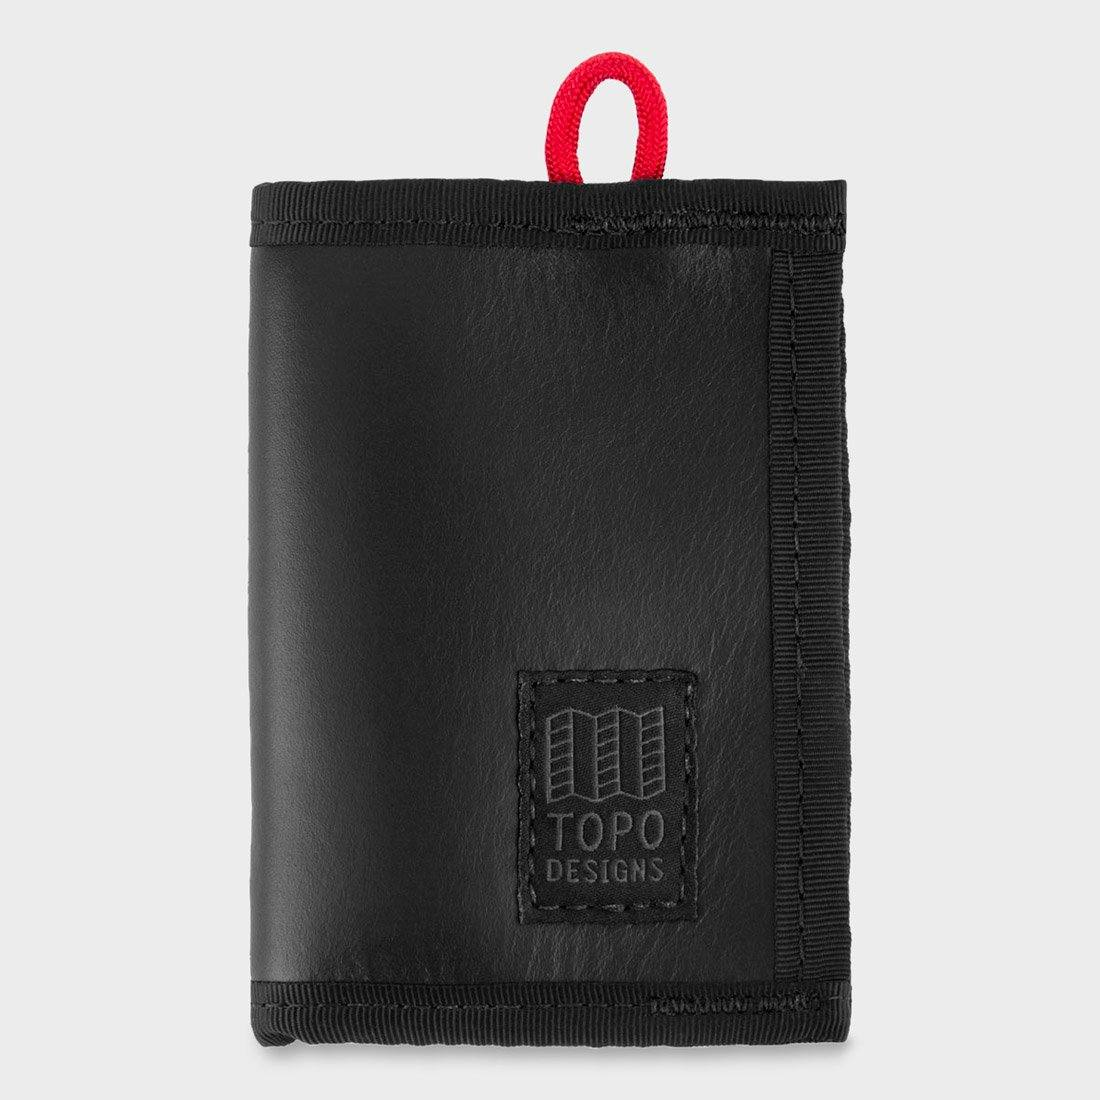 Topo Designs Leather Wallet Black